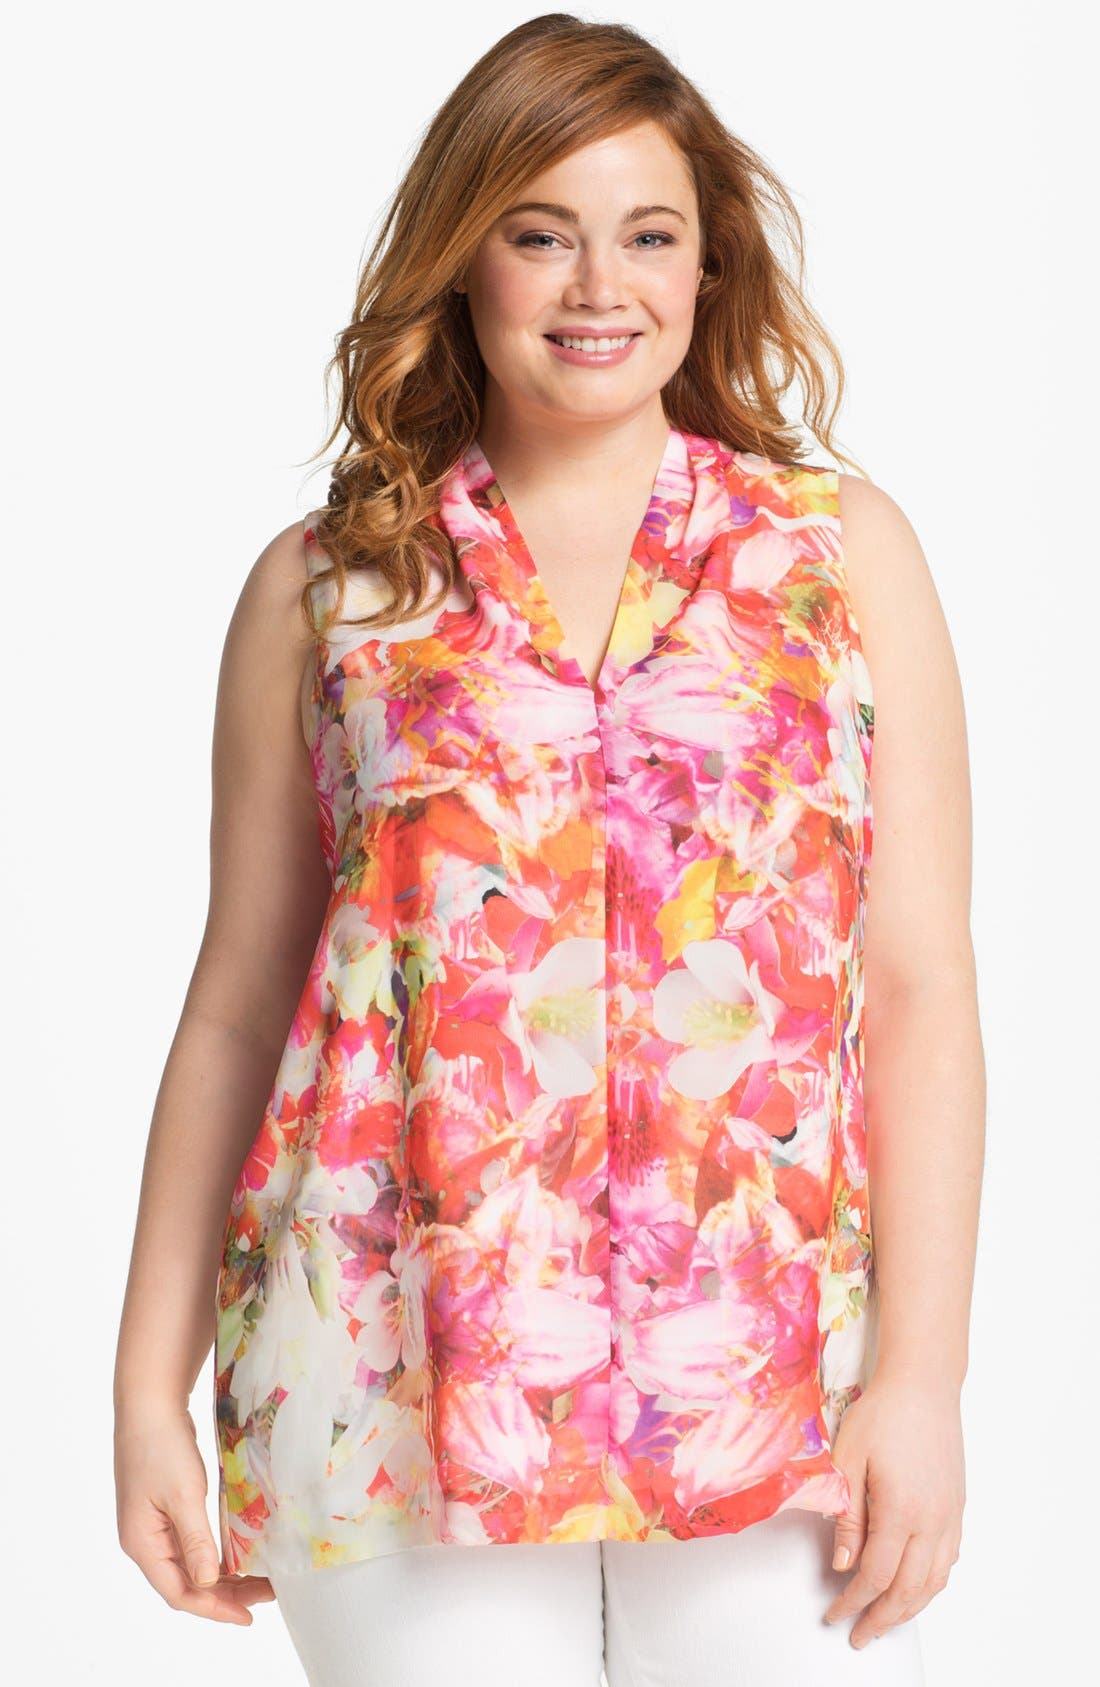 Alternate Image 1 Selected - Vince Camuto Floral Print Sleeveless Blouse (Plus Size)